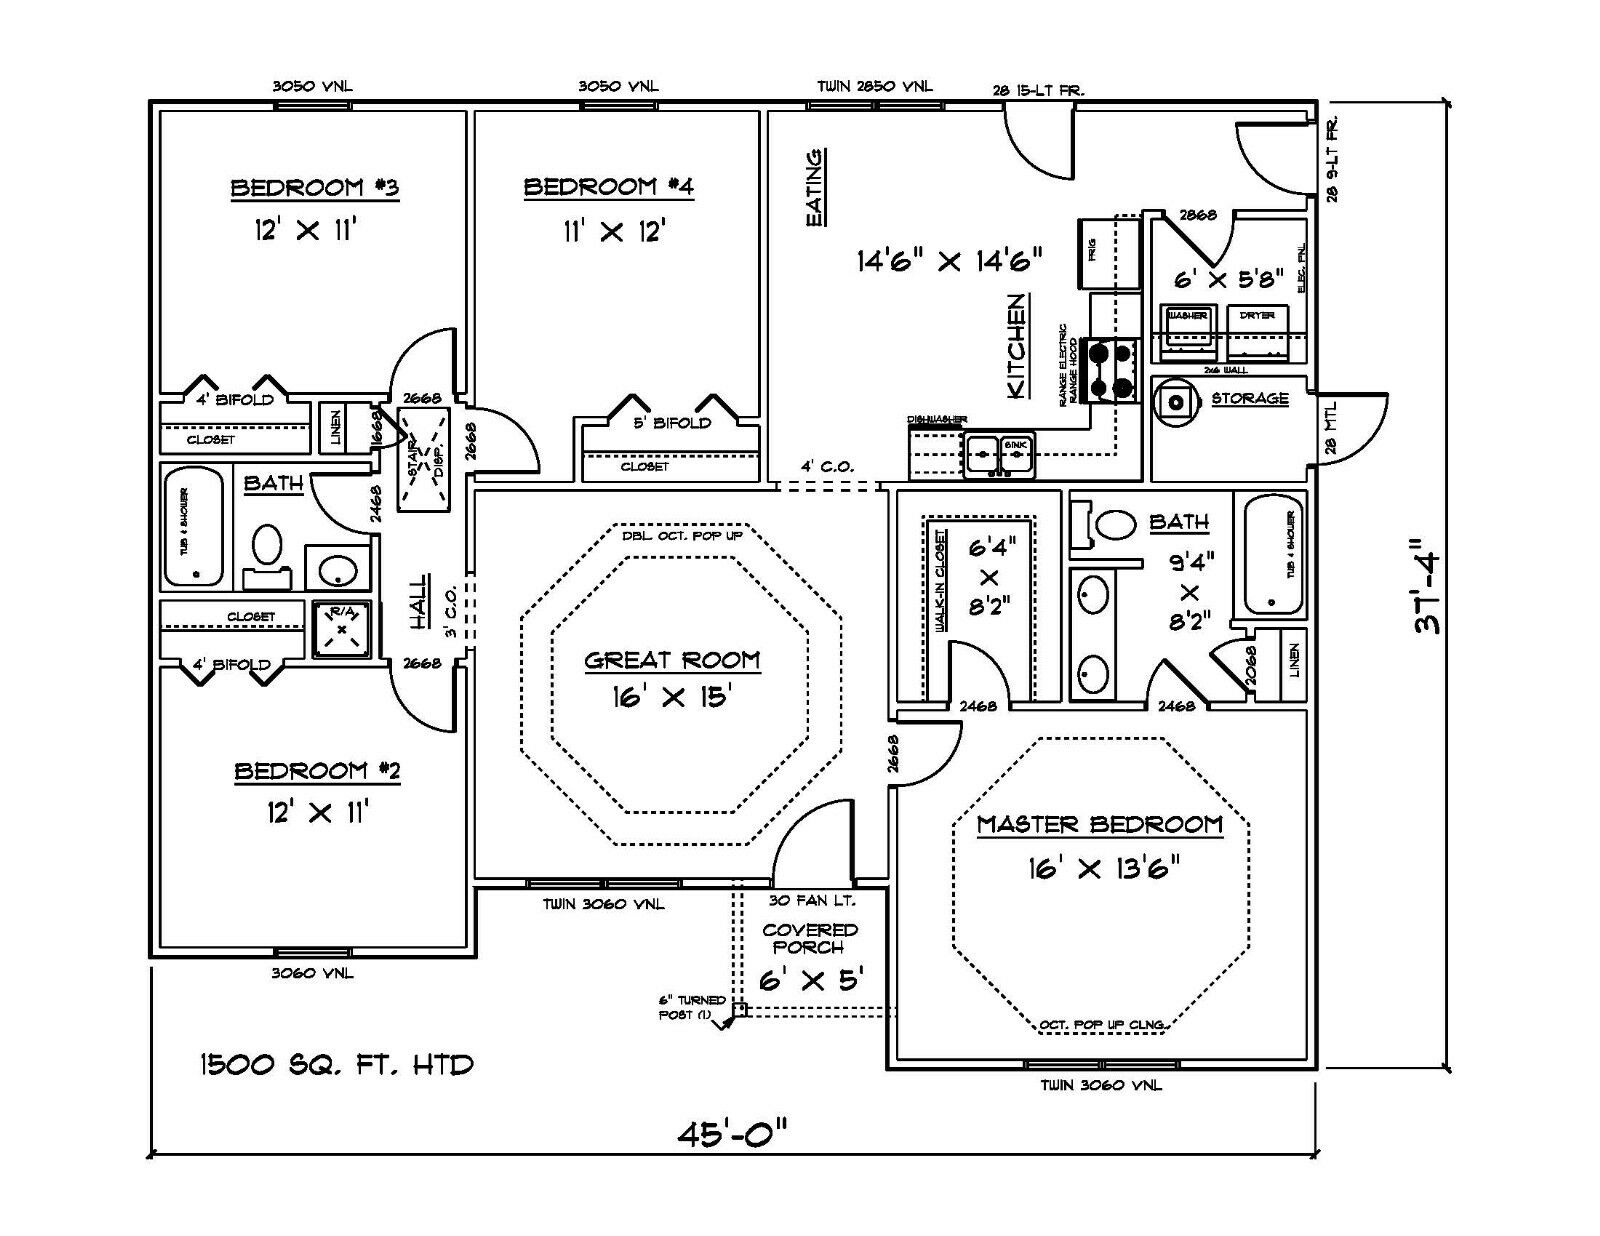 Unique house plans 1500 square feet house floor ideas for House plans with photos 1500 sq ft